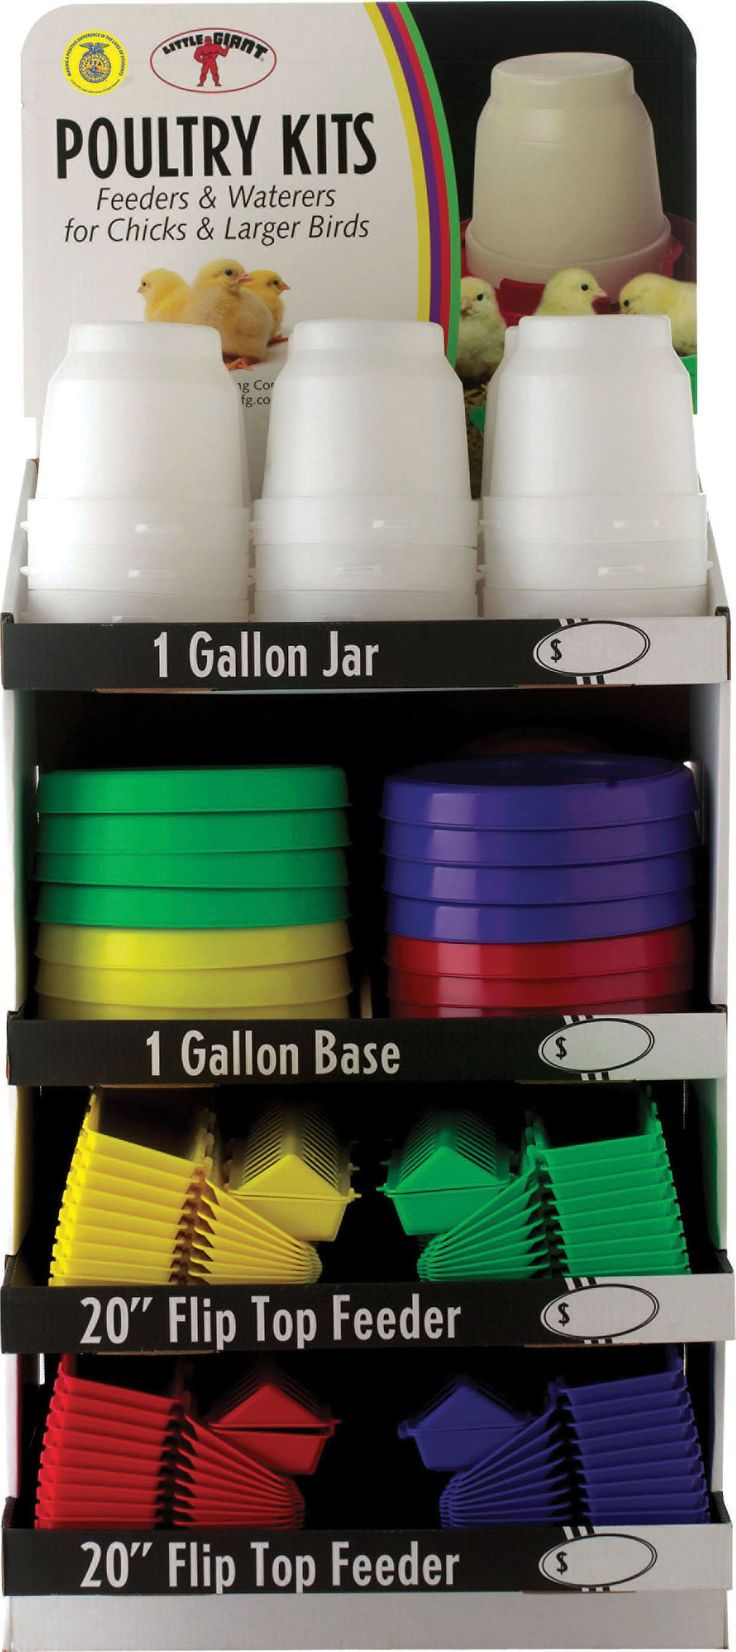 Miller Mfg Co Inc P-Little Giant Poultry Kit Display- Assorted 1 Gallon